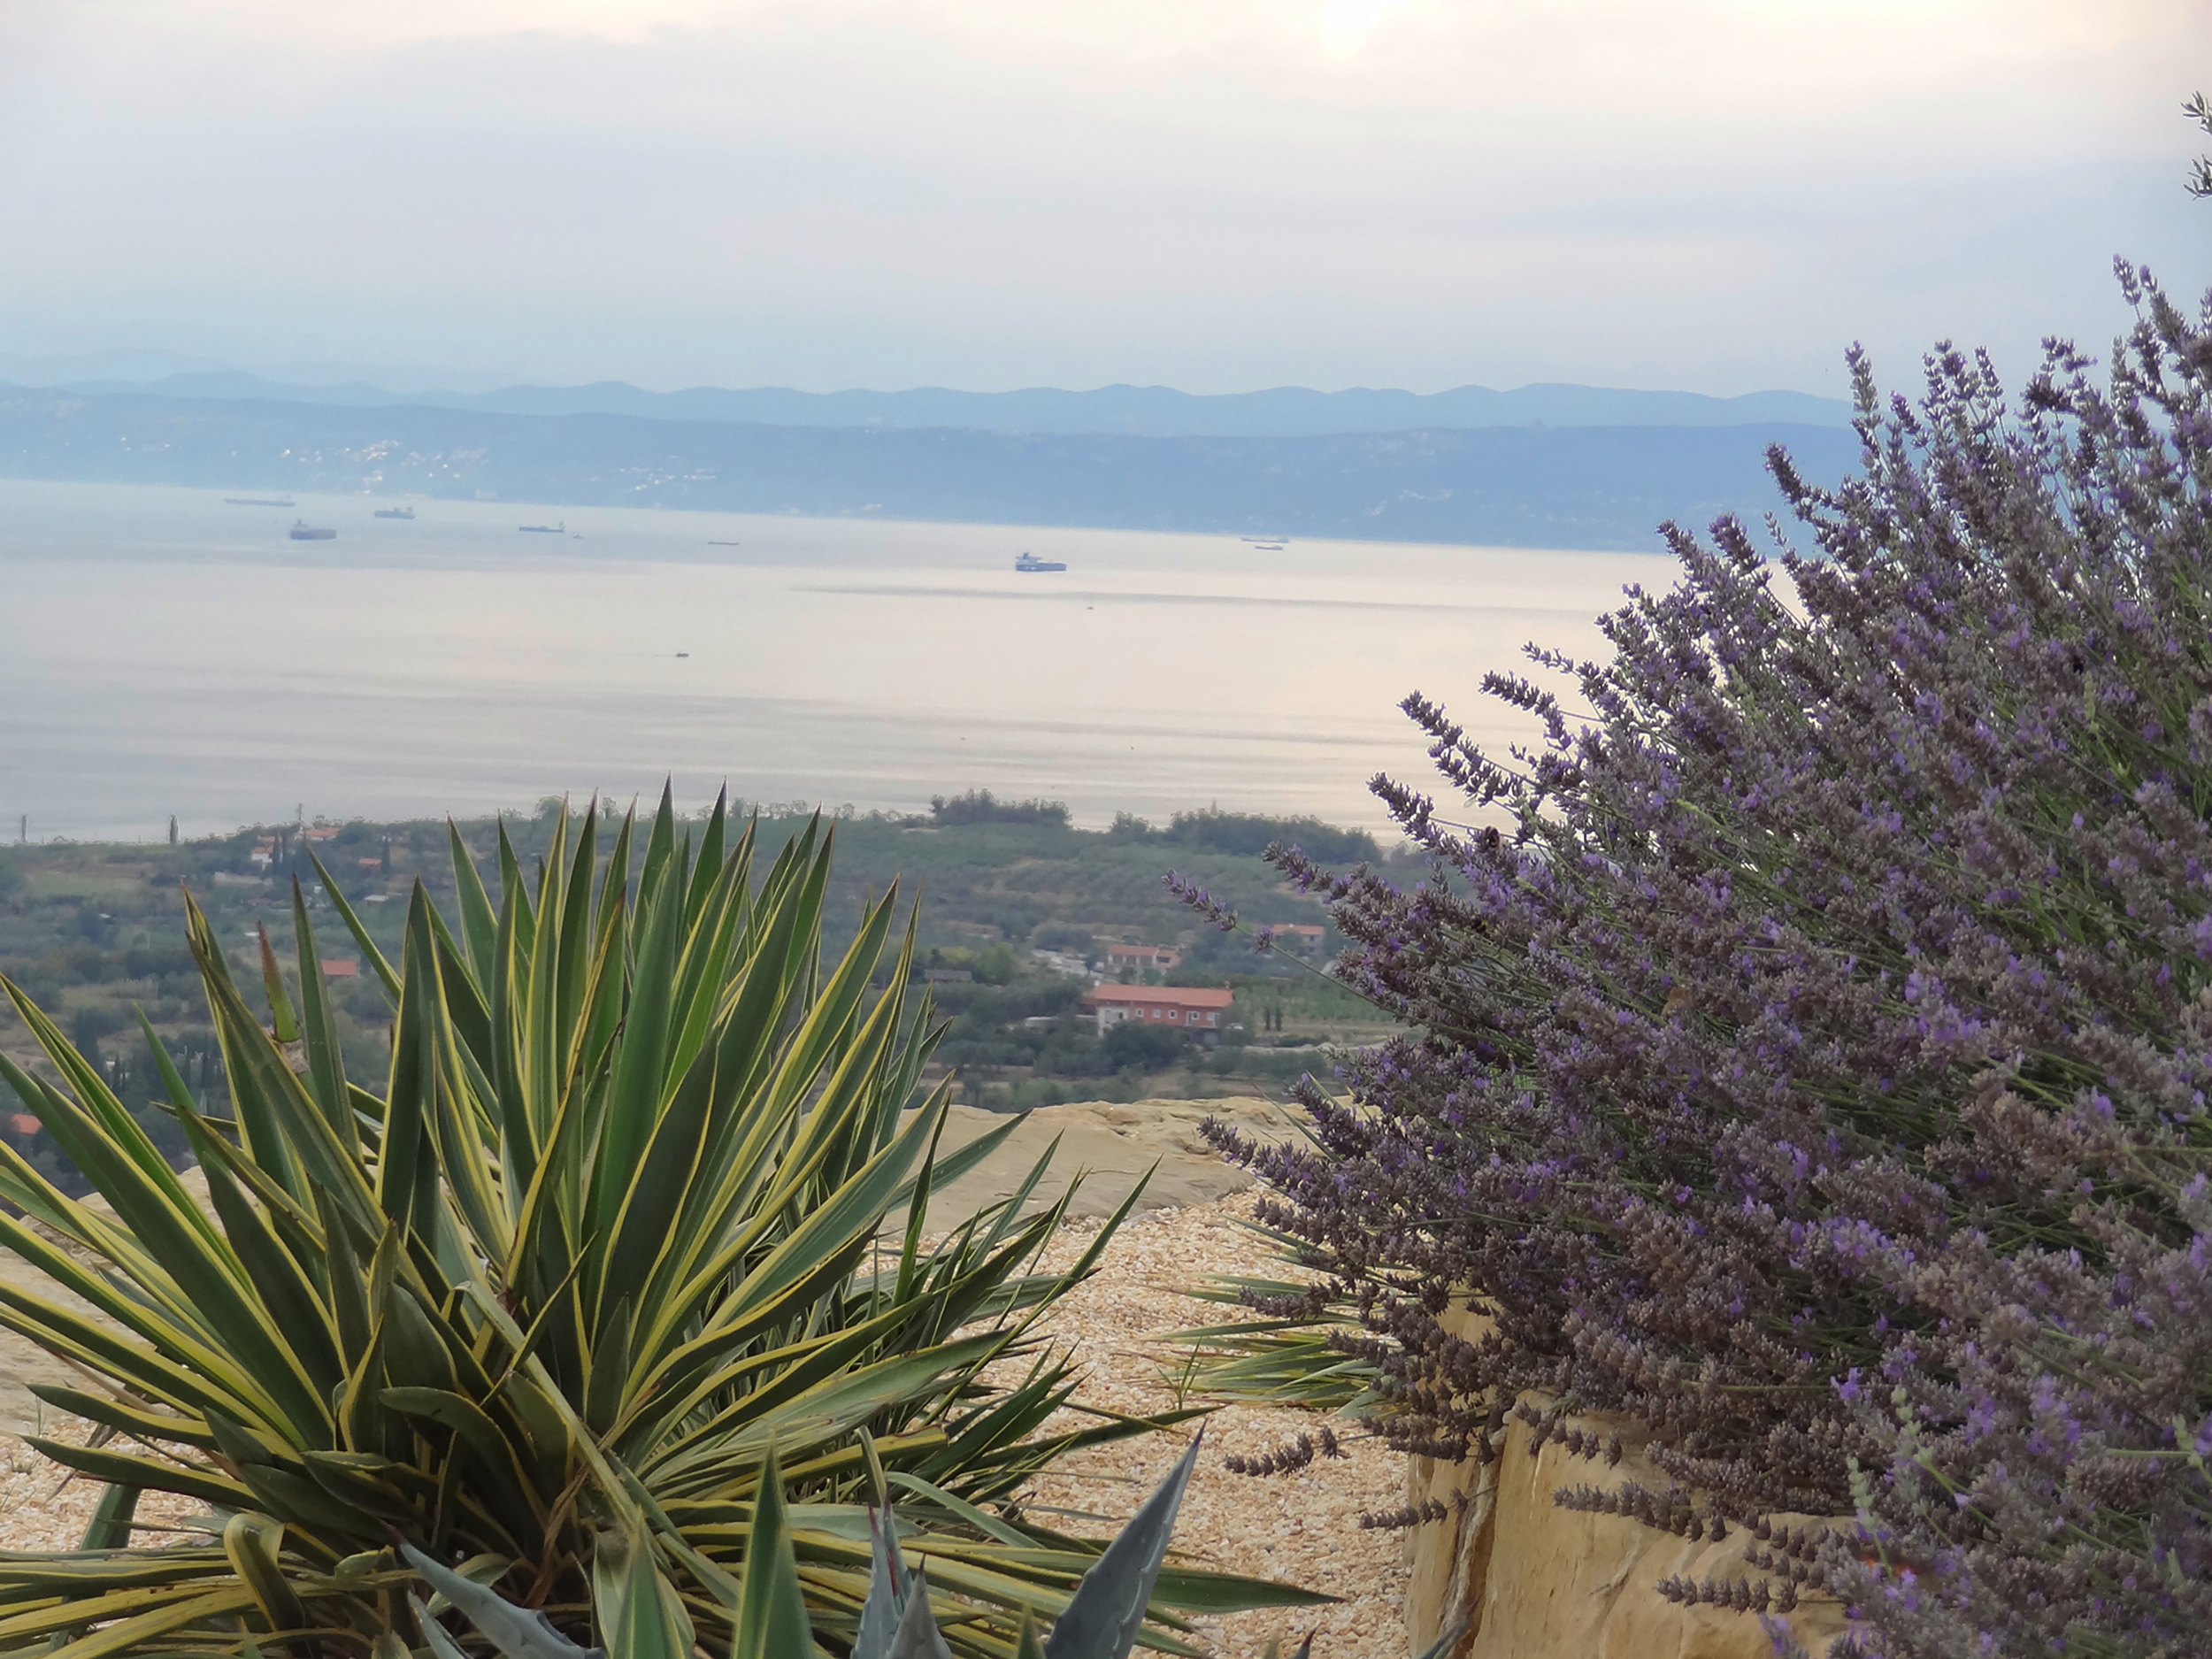 izola vrt garden morje sea razgled view rocks skale